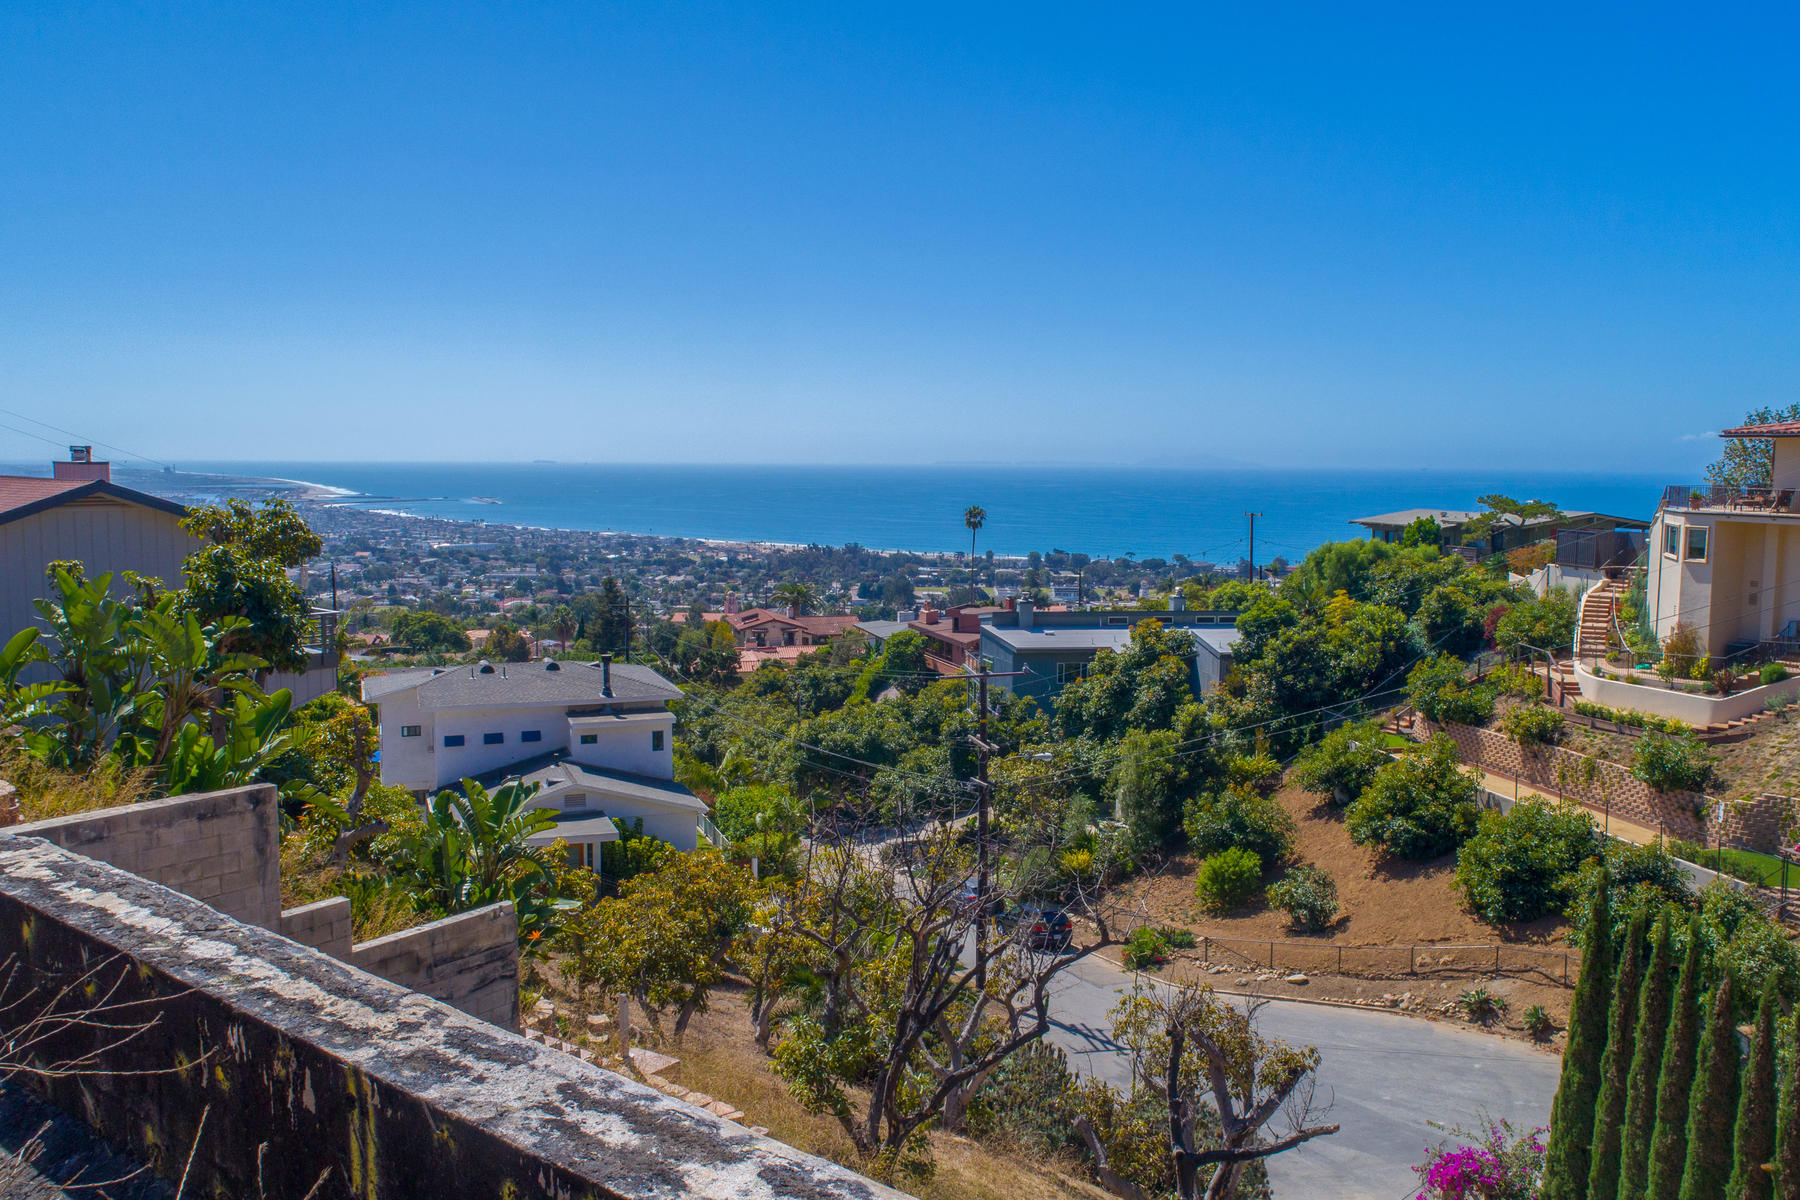 Land for Sale at 498 Manzanita Avenue Ventura, California 93003 United States